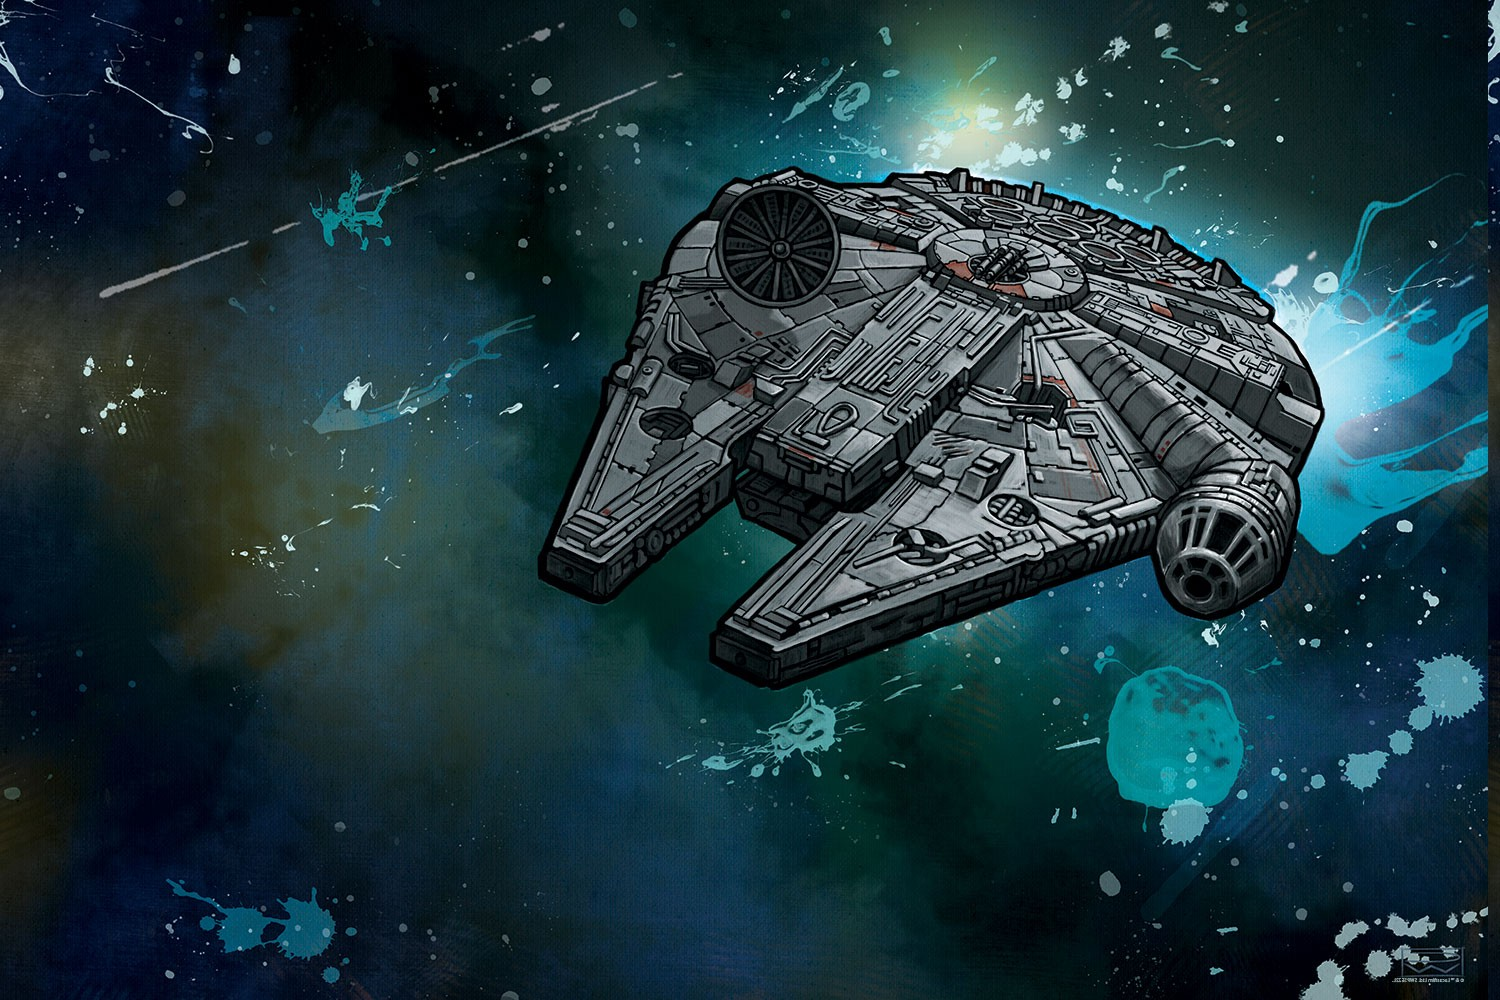 Falcon High Resolution Wallpapers: Download Star Wars Millenium Falcon Wallpaper Gallery